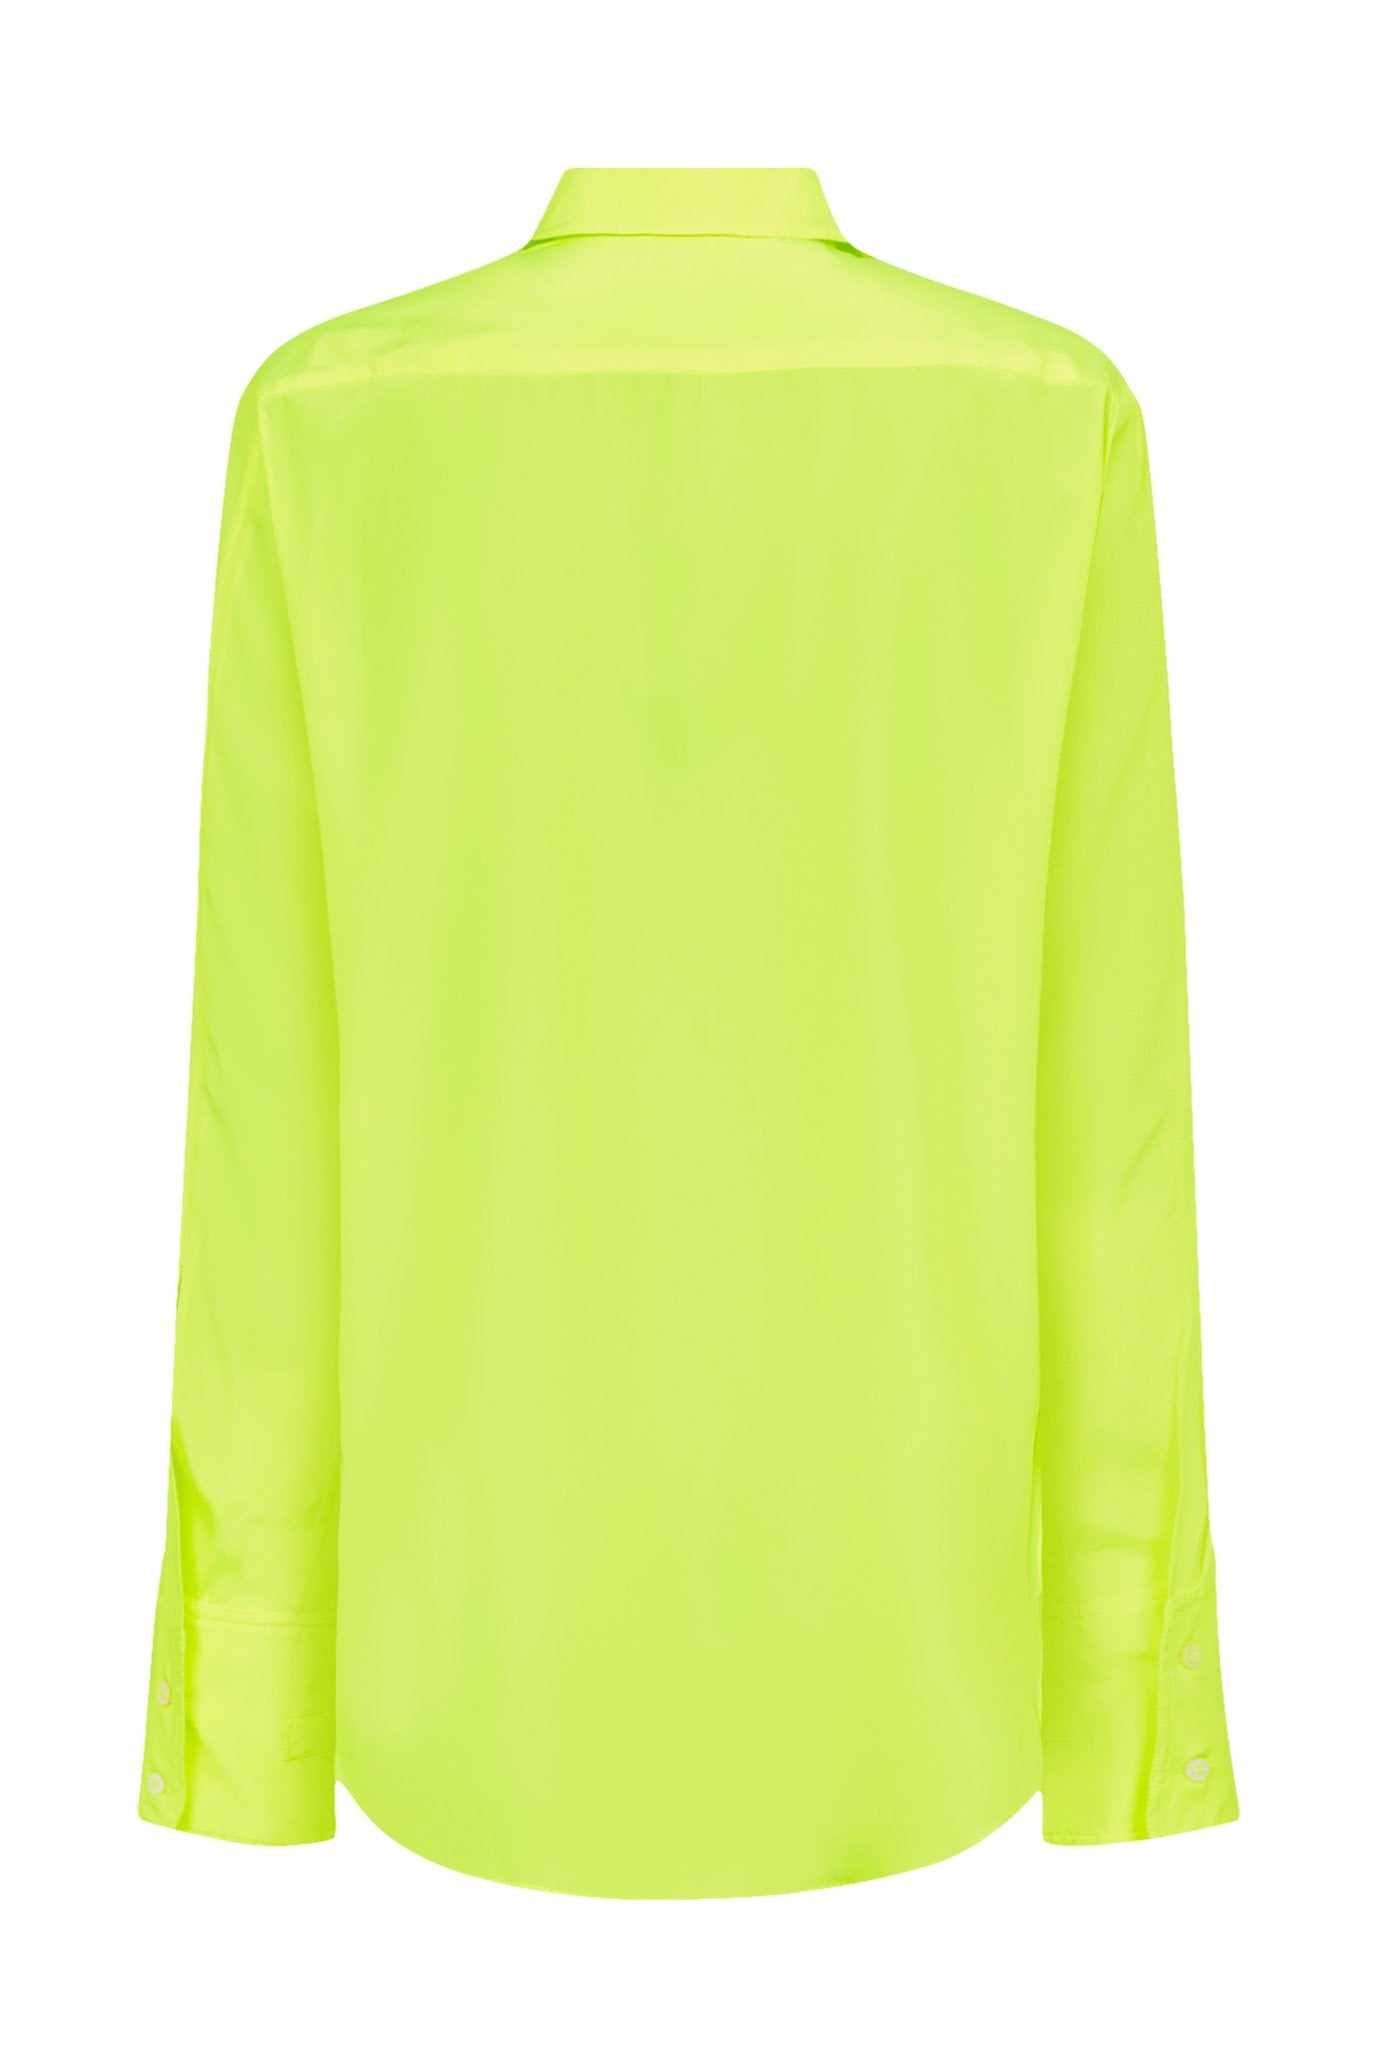 Oversized shirt neon yellow Serena Bute